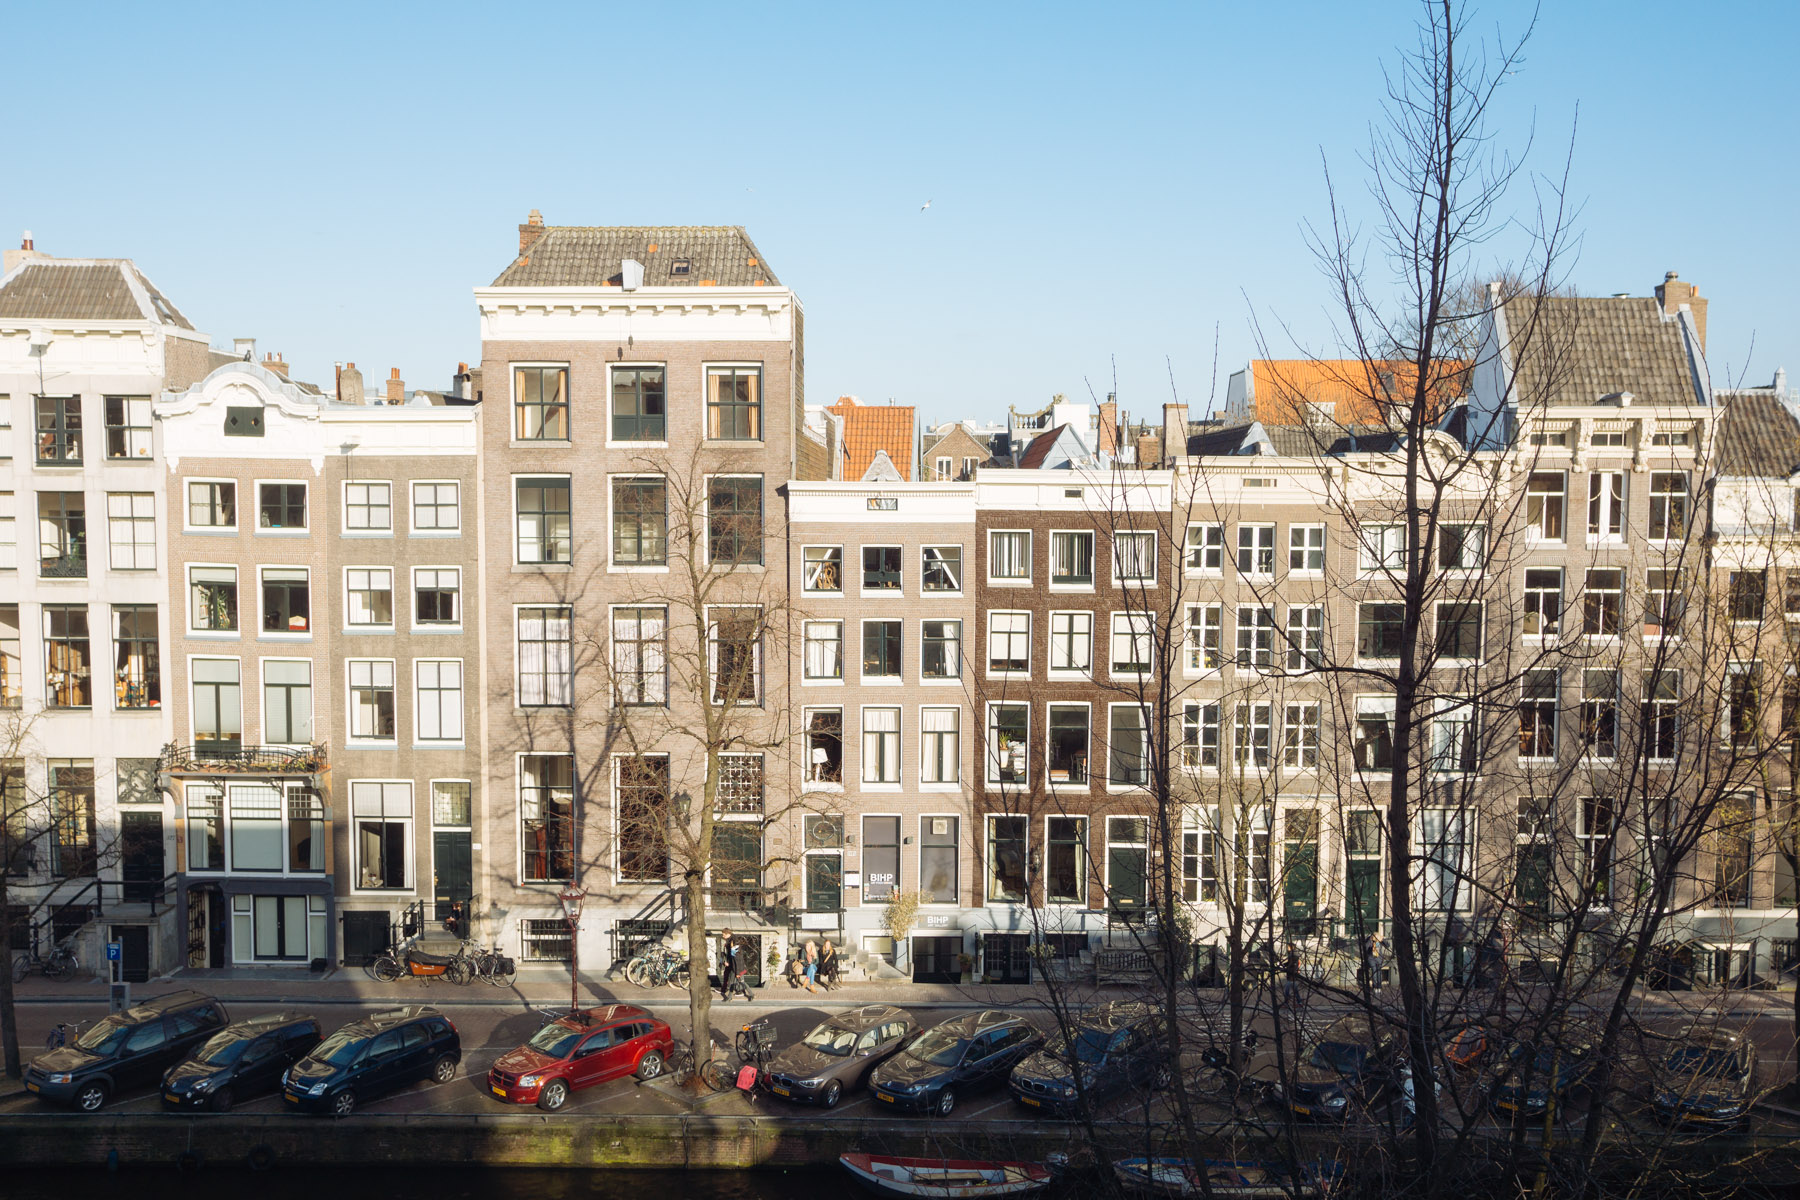 The Hotel Dylan Review Luxury Boutique Hotel In Amsterdam